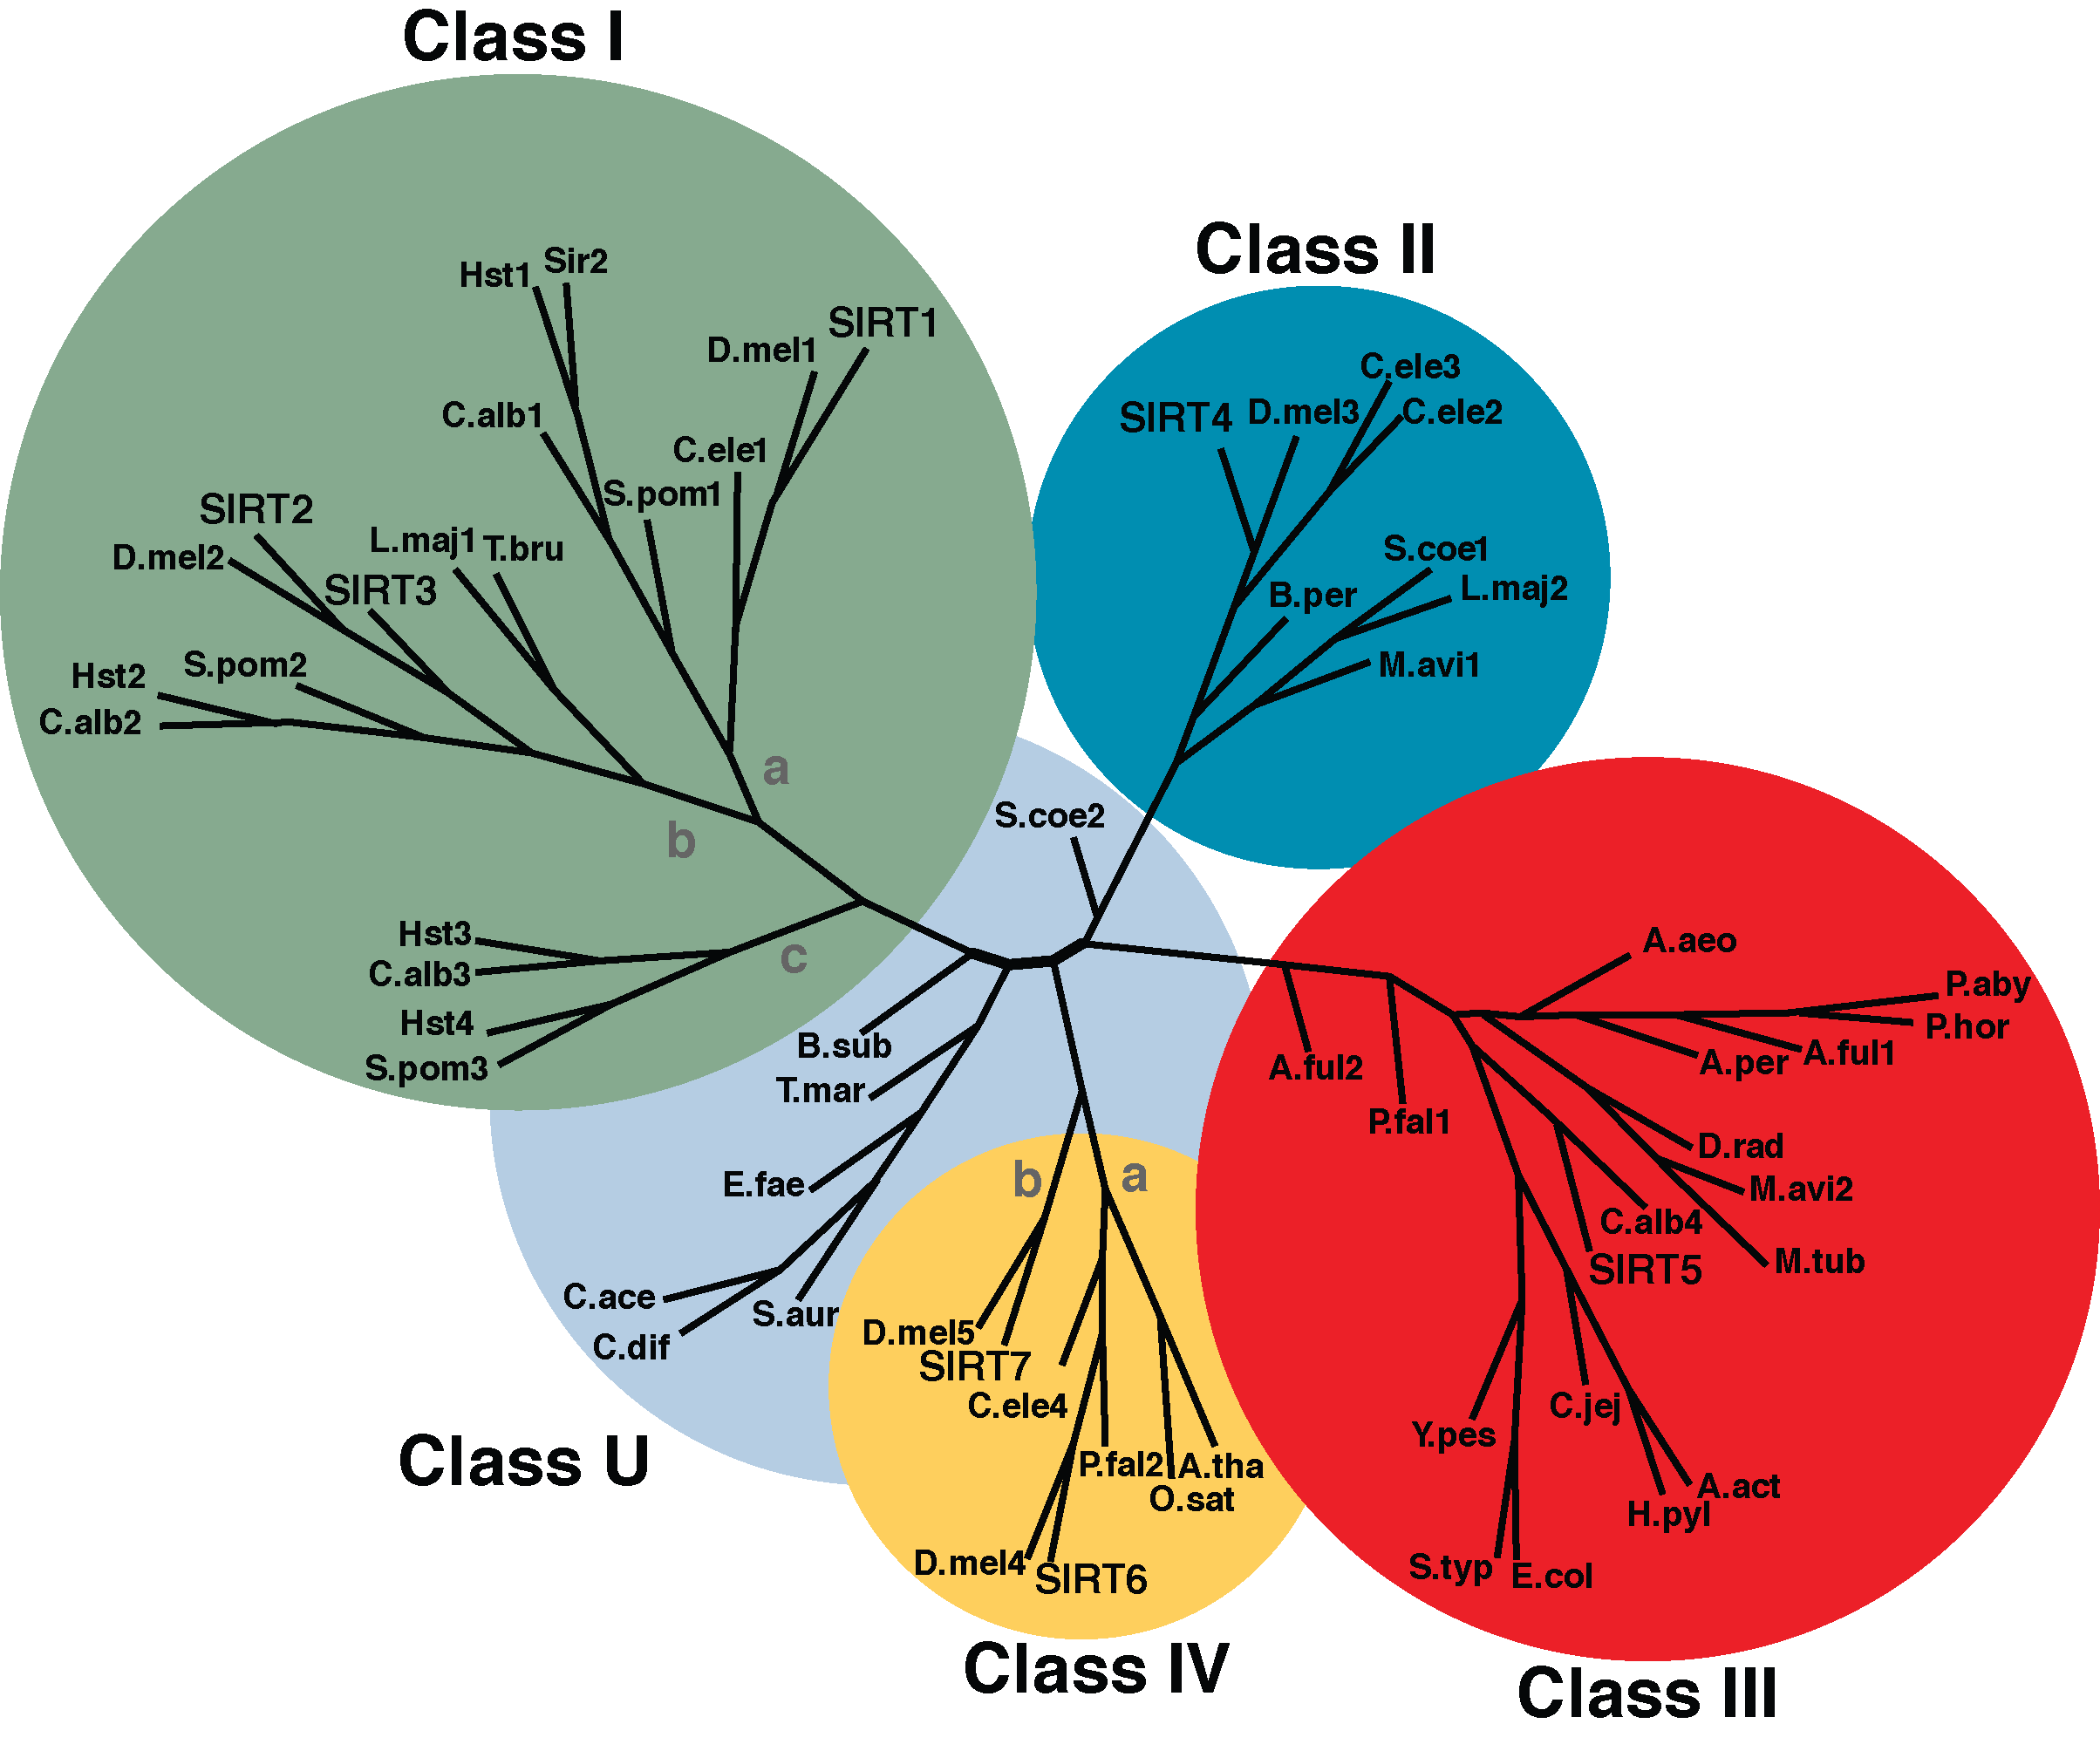 An unrooted tree diagram of a phylogenetic analysis of the conserved sirtuin core deacylase domain sequences, divided into class I, II, III, IV and U groups; classes I and IV are further divided into sub-classes